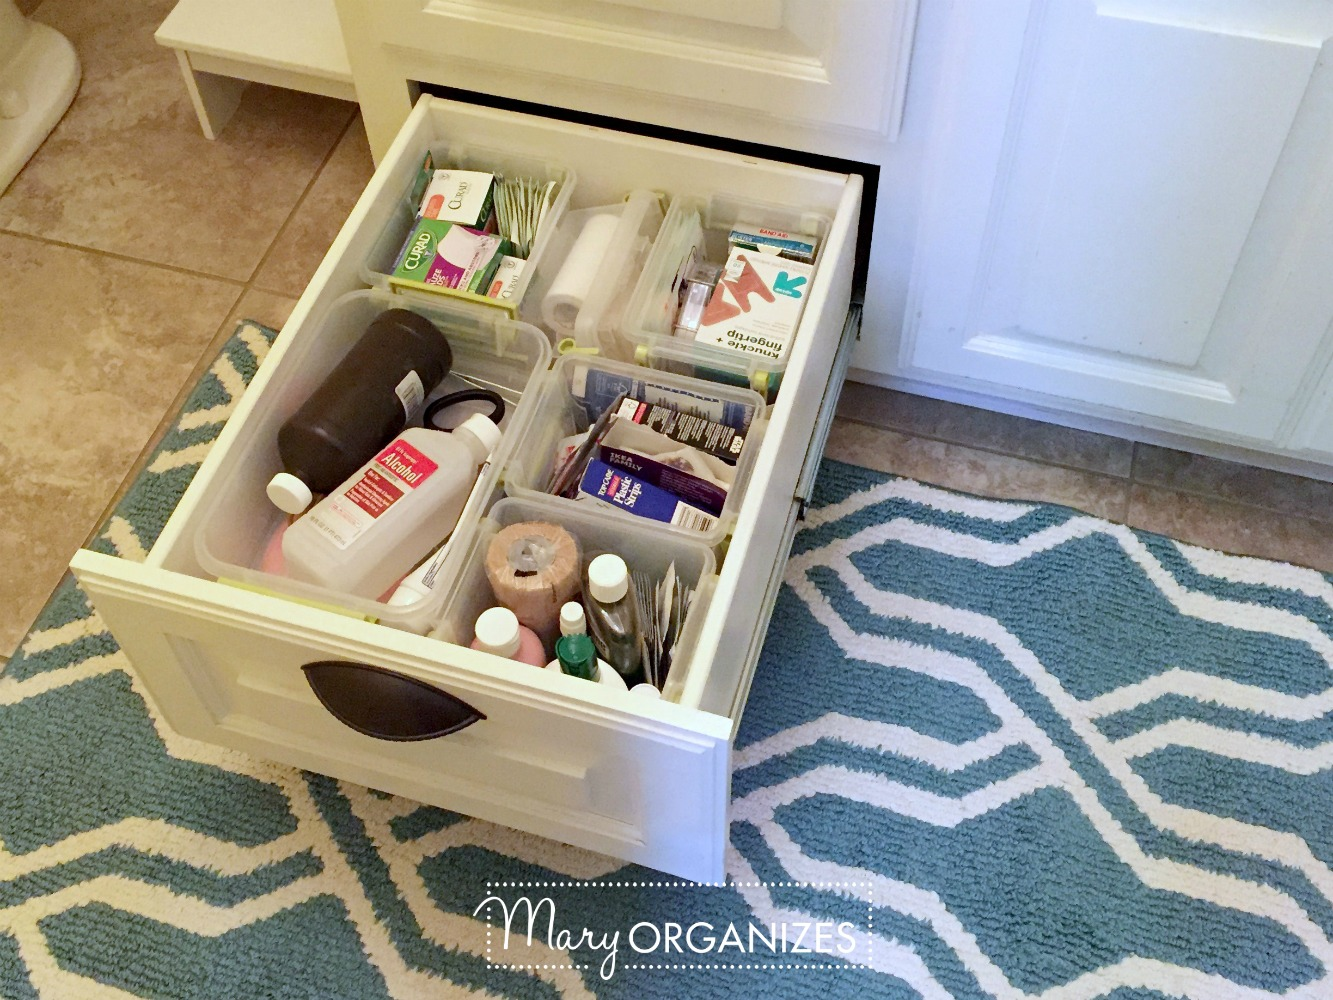 Organizing First Aid Supplies - This is what I do - Mary ORGANIZES 2